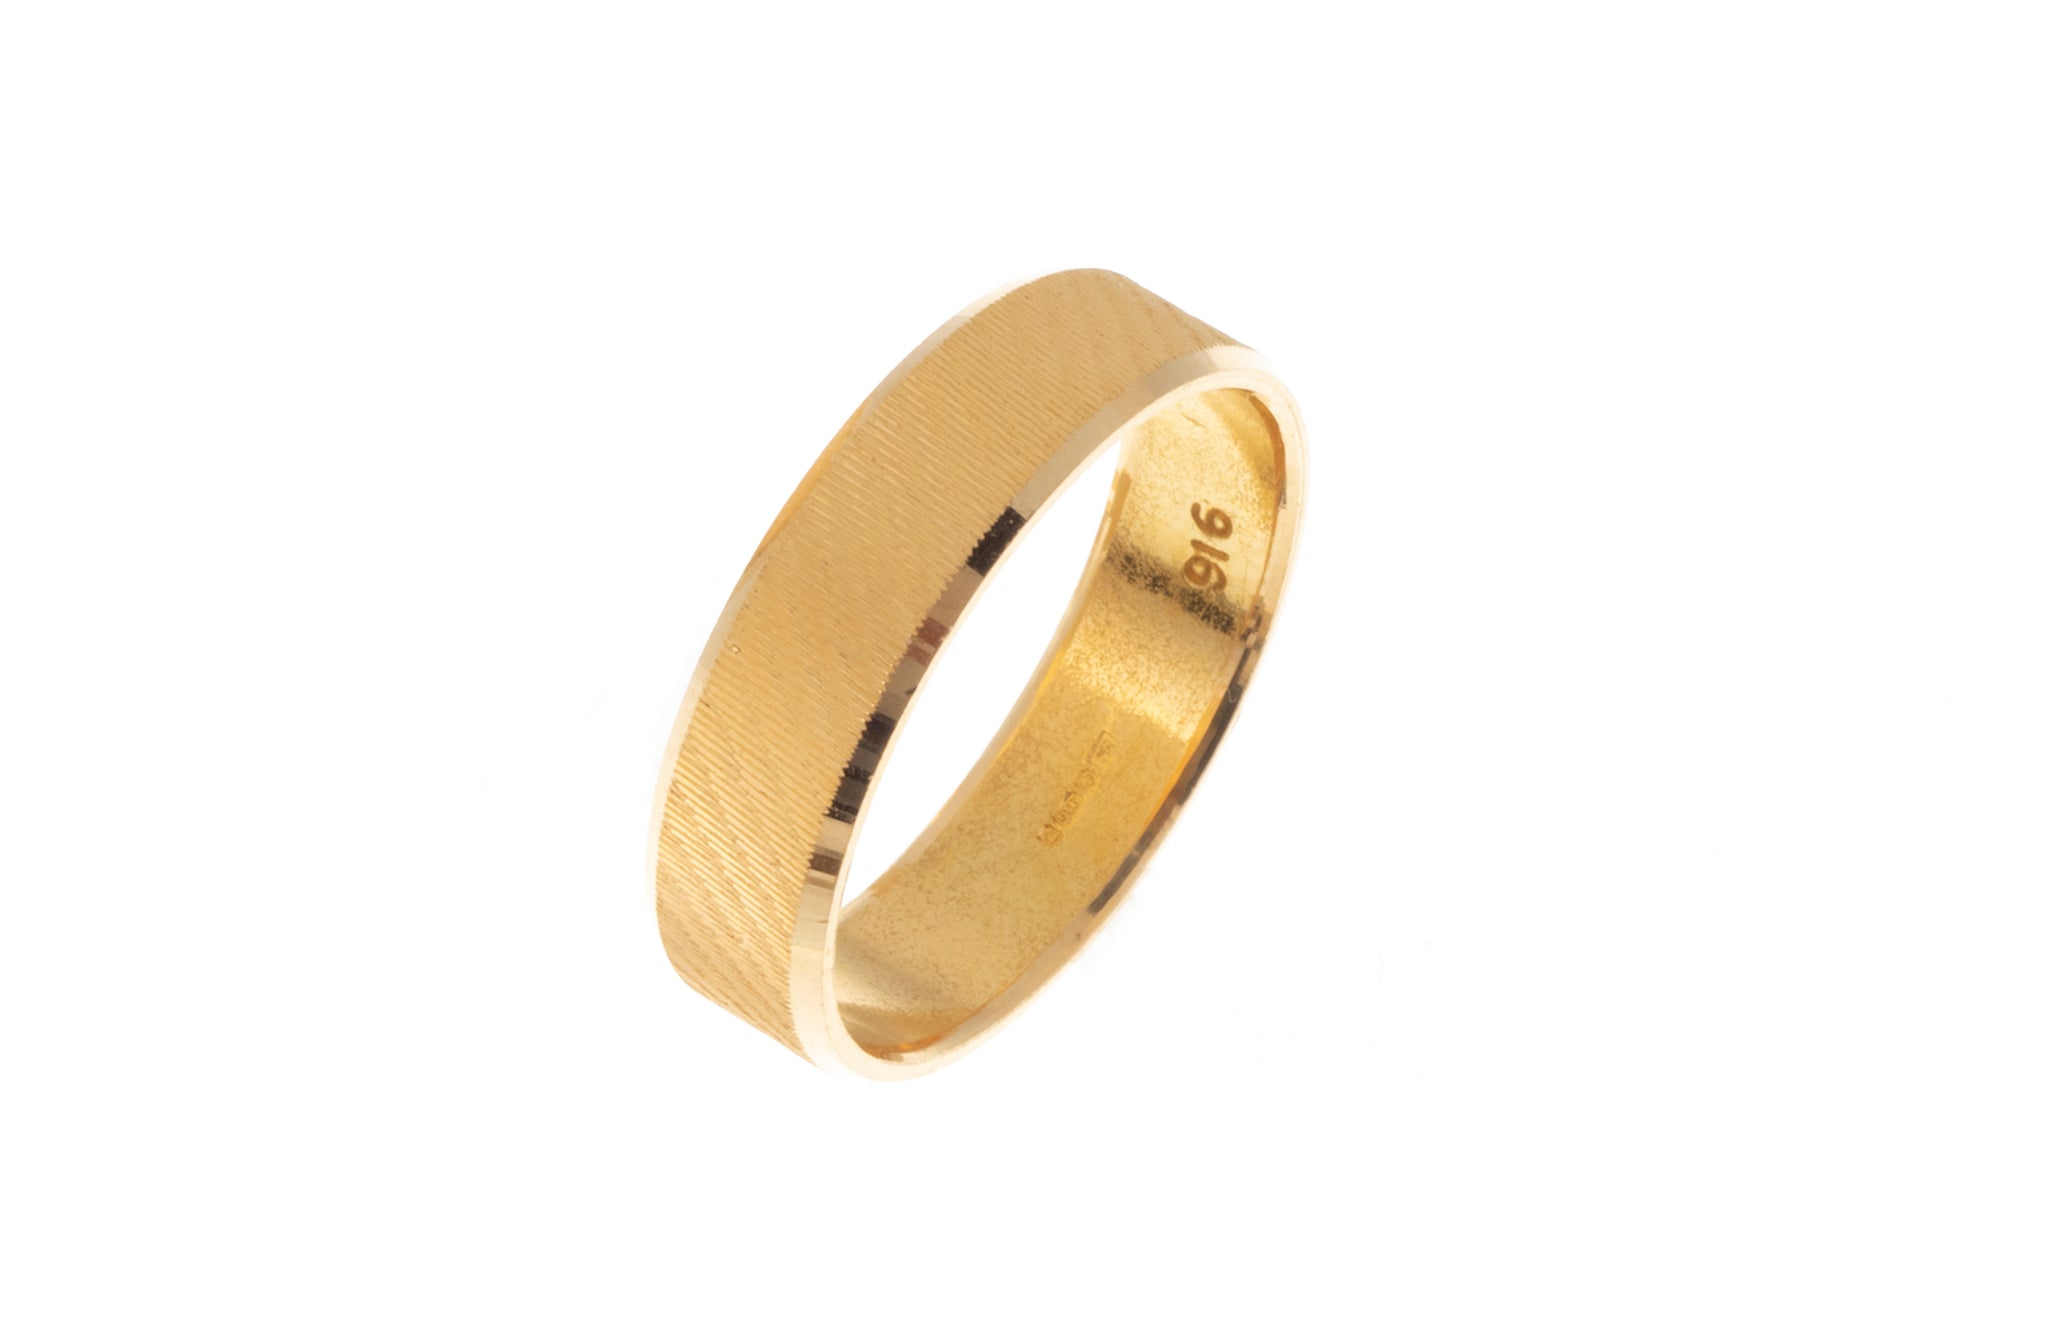 22ct Gold Wedding Band with Diamond Cut Design LR/GR-7361